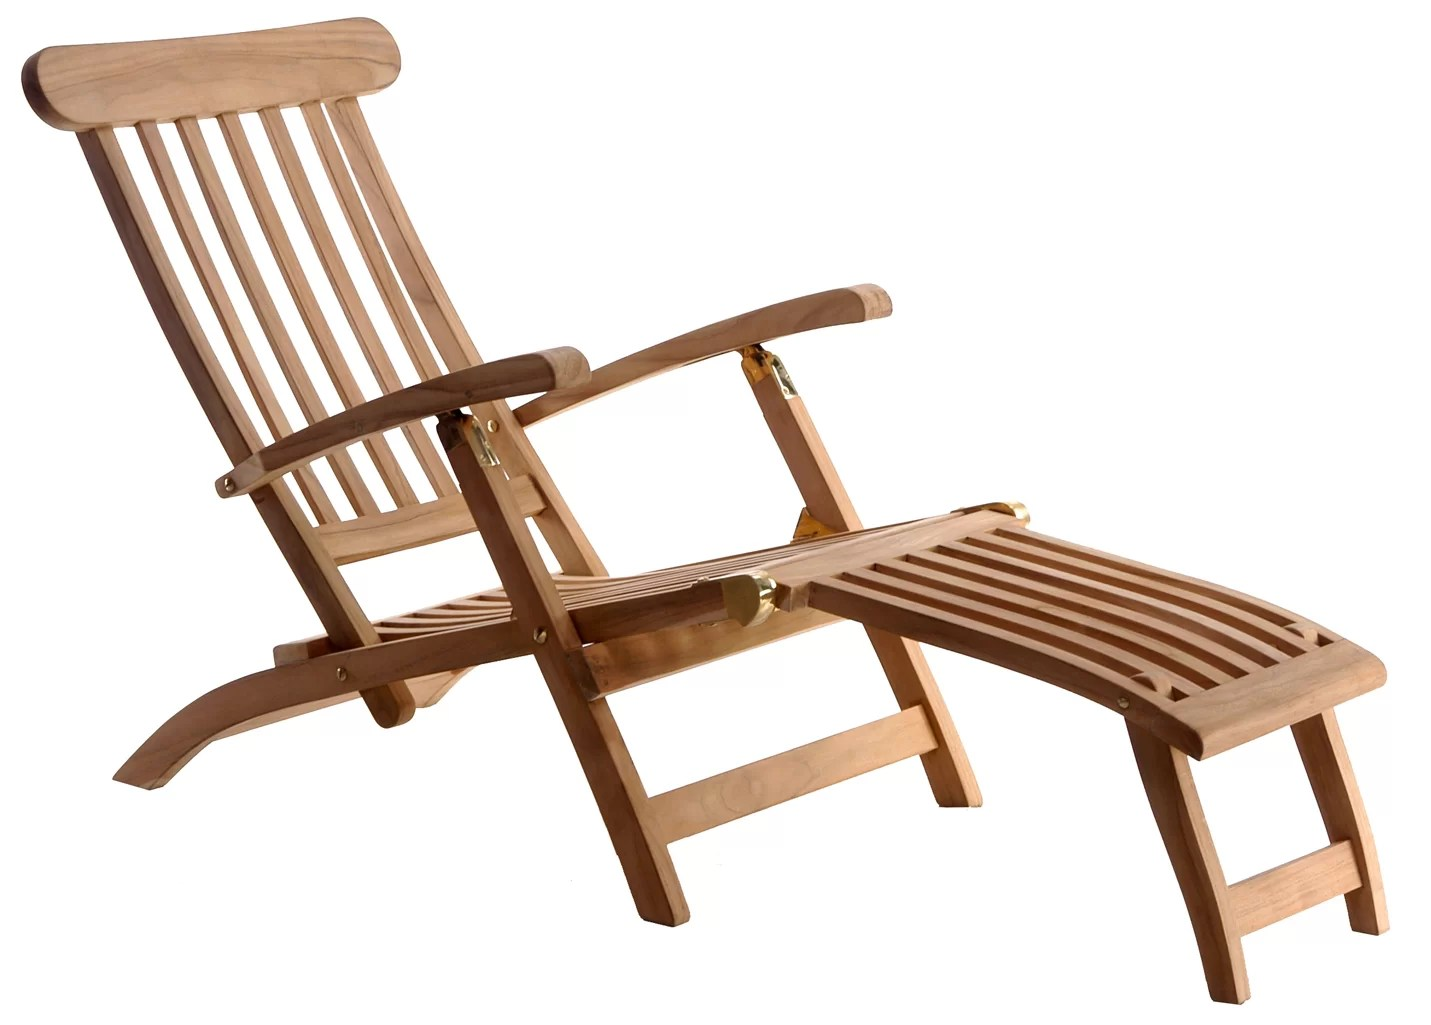 Teak Chaise Lounge Chairs Titanic Teak Steamer Chaise Lounge